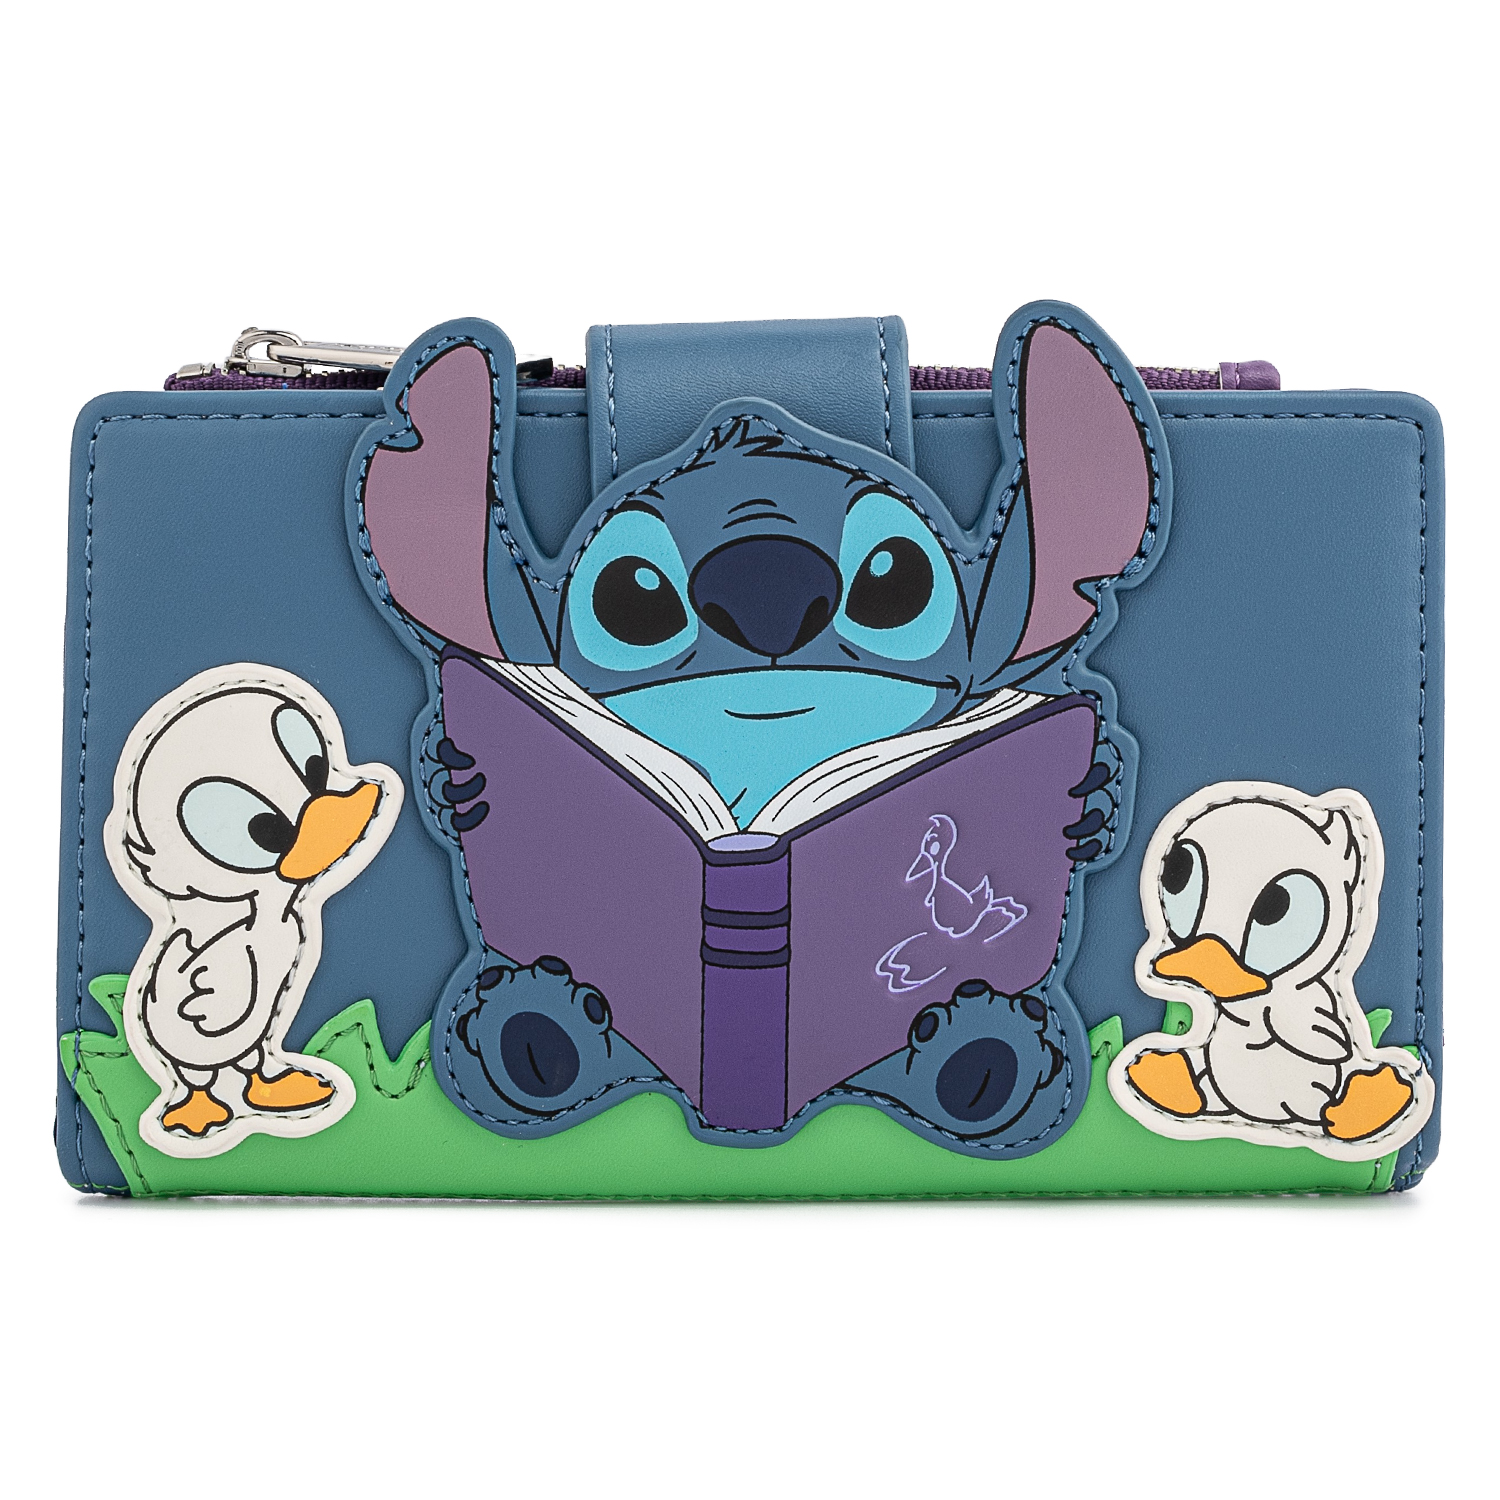 Stitch and Ducks Loungefly Flap Wallet